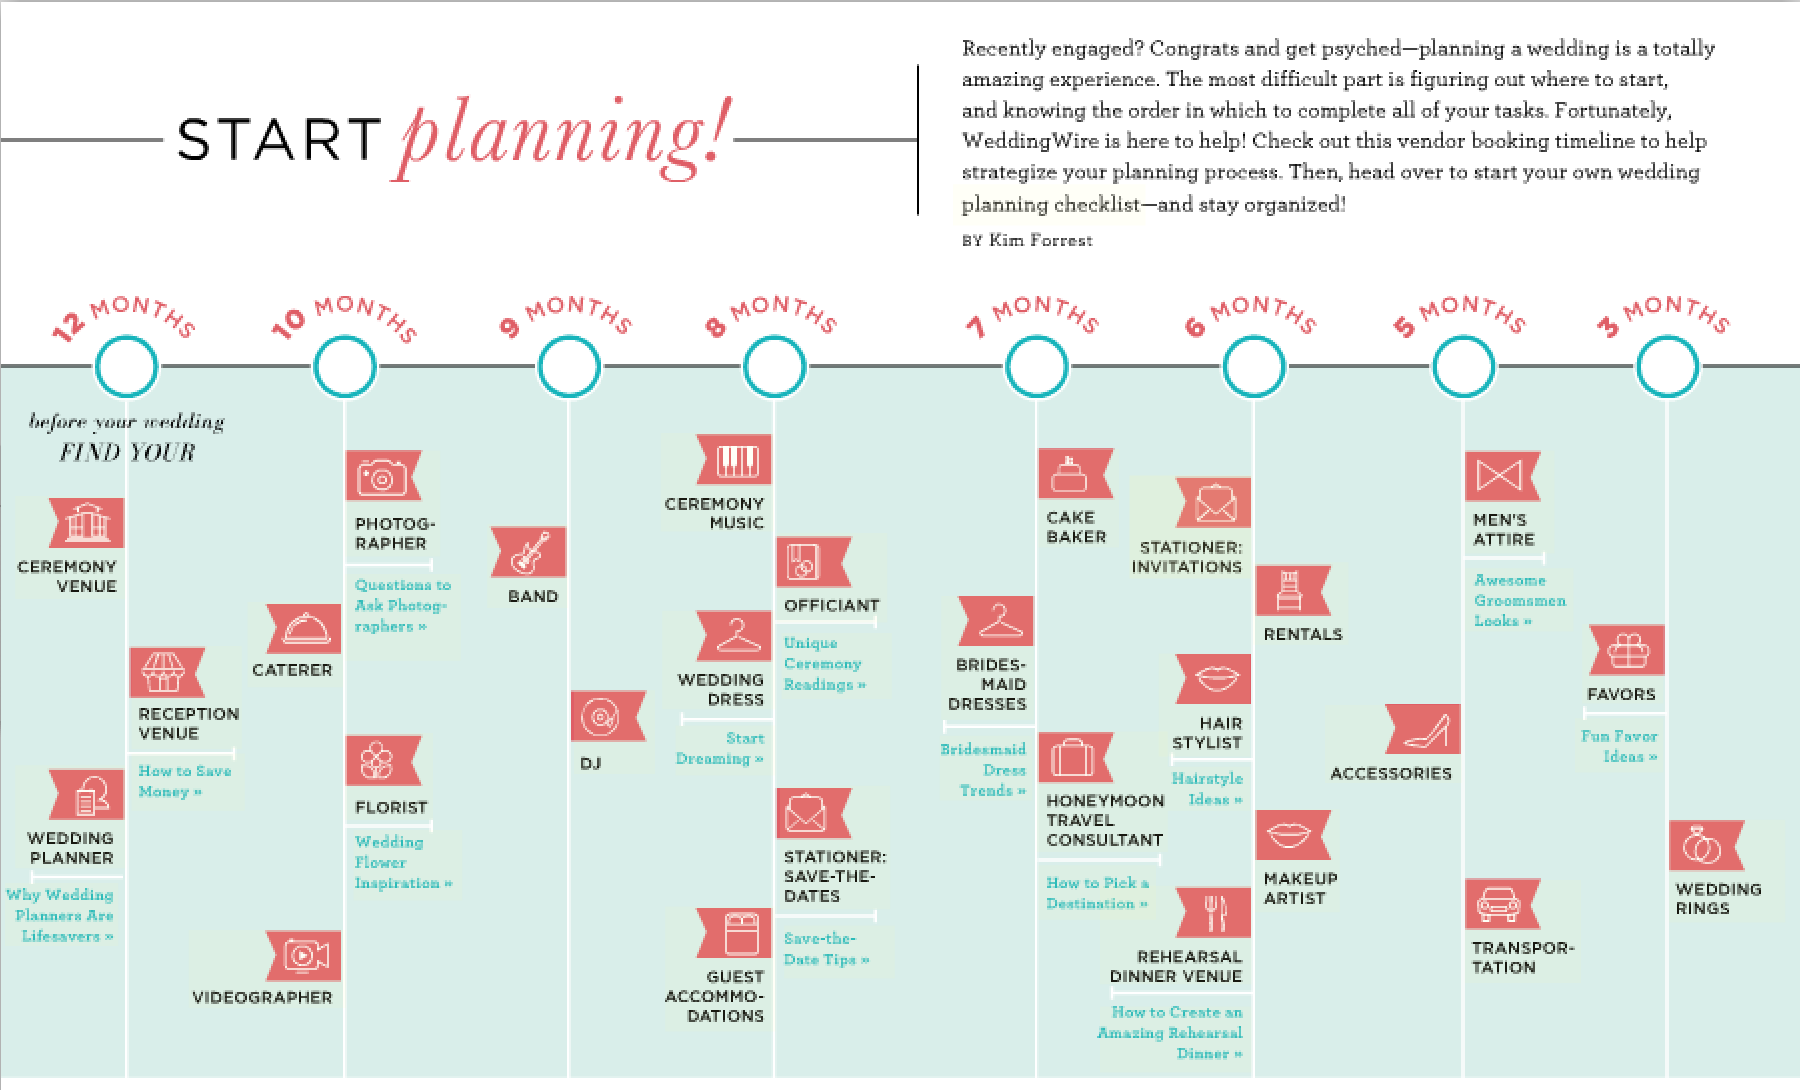 Timeline For Wedding Planning In 6 Months